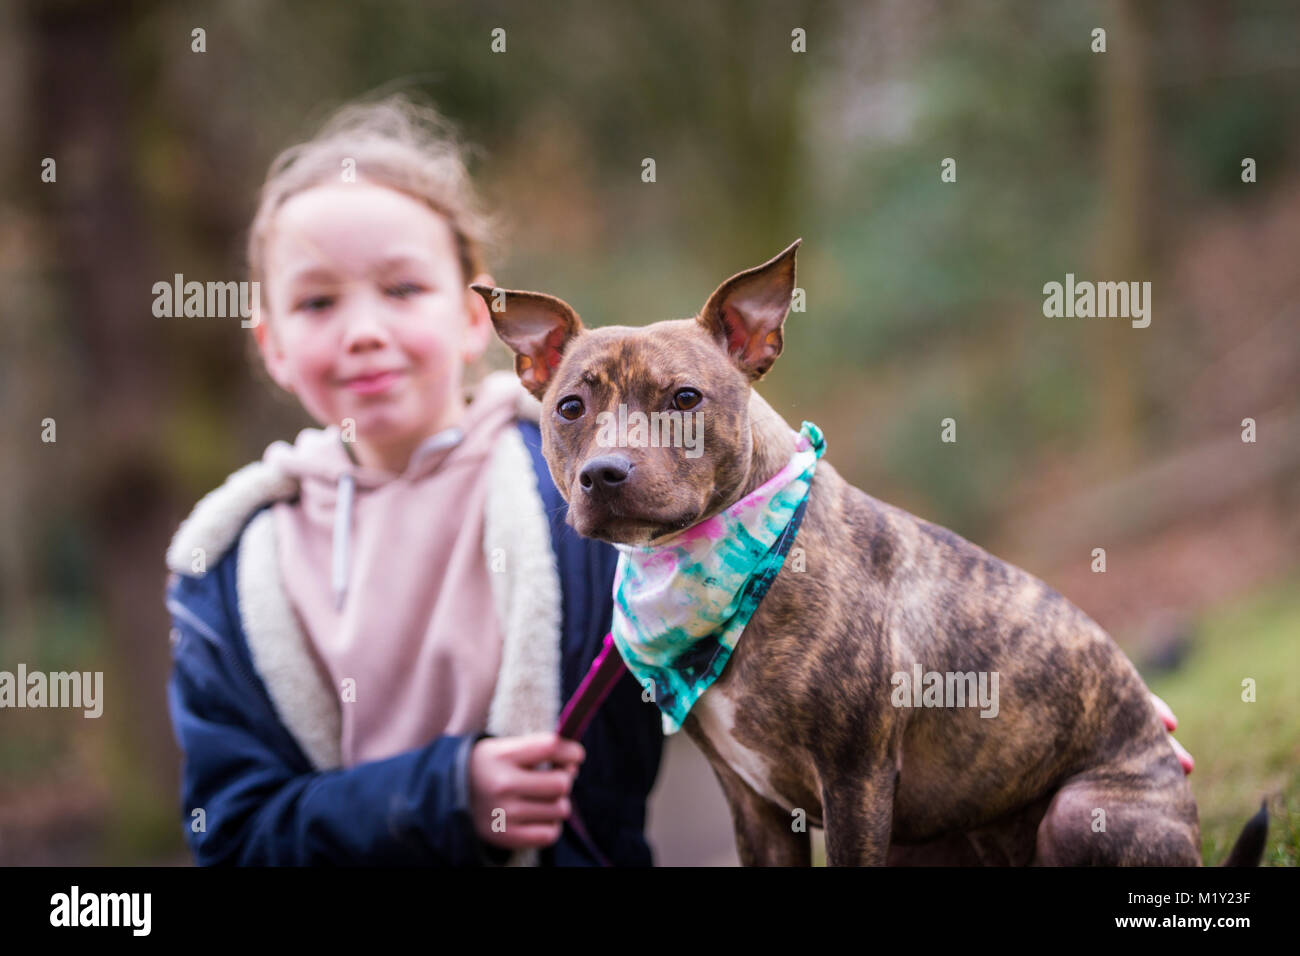 Young girl with her pet staffordshire bull terrier dog in the park smiling - Stock Image